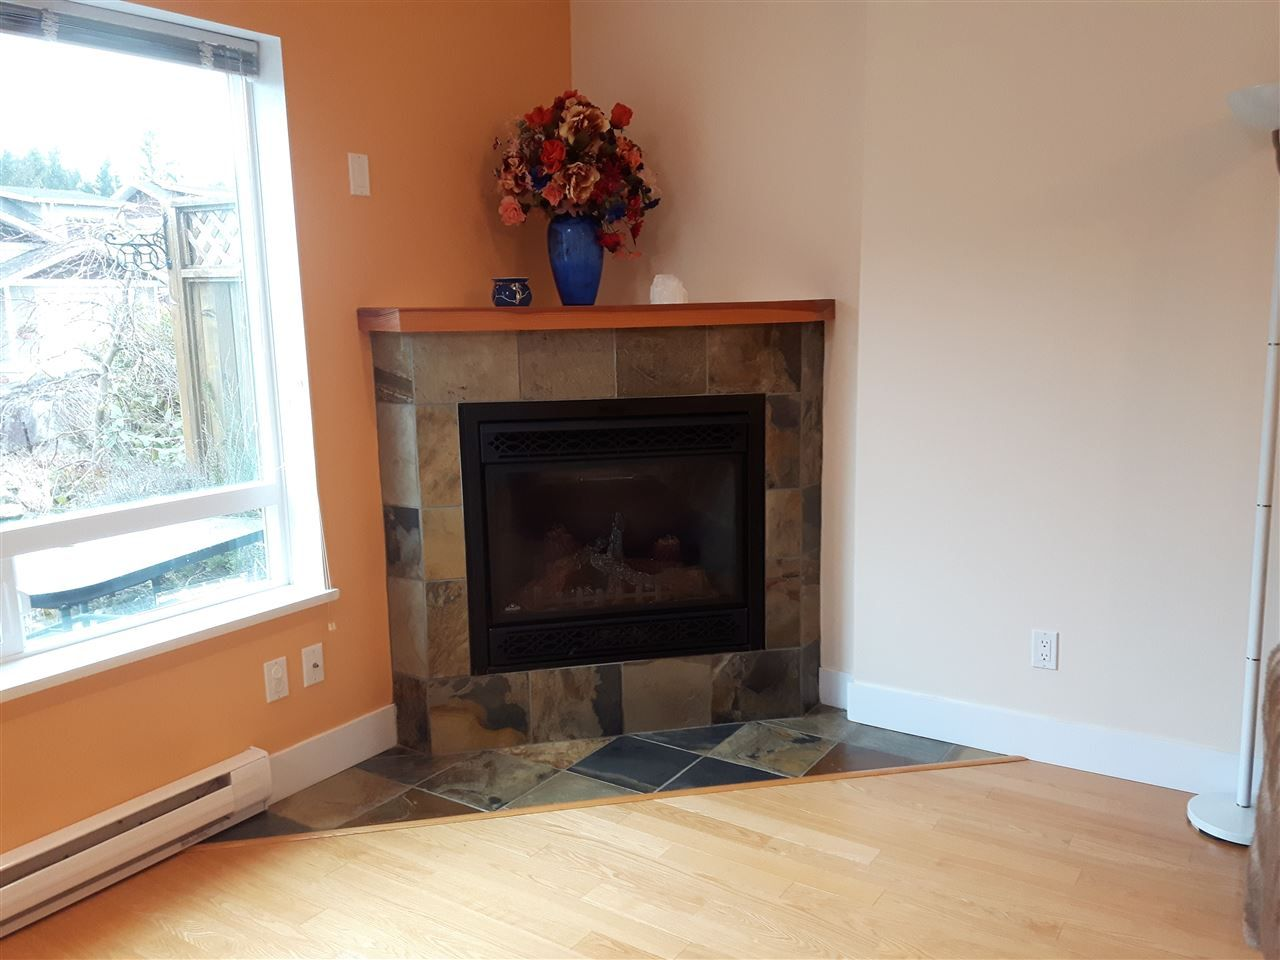 "Photo 12: Photos: 8 12710 LAGOON Road in Pender Harbour: Pender Harbour Egmont House 1/2 Duplex for sale in ""LILY LAKE"" (Sunshine Coast)  : MLS® # R2243902"